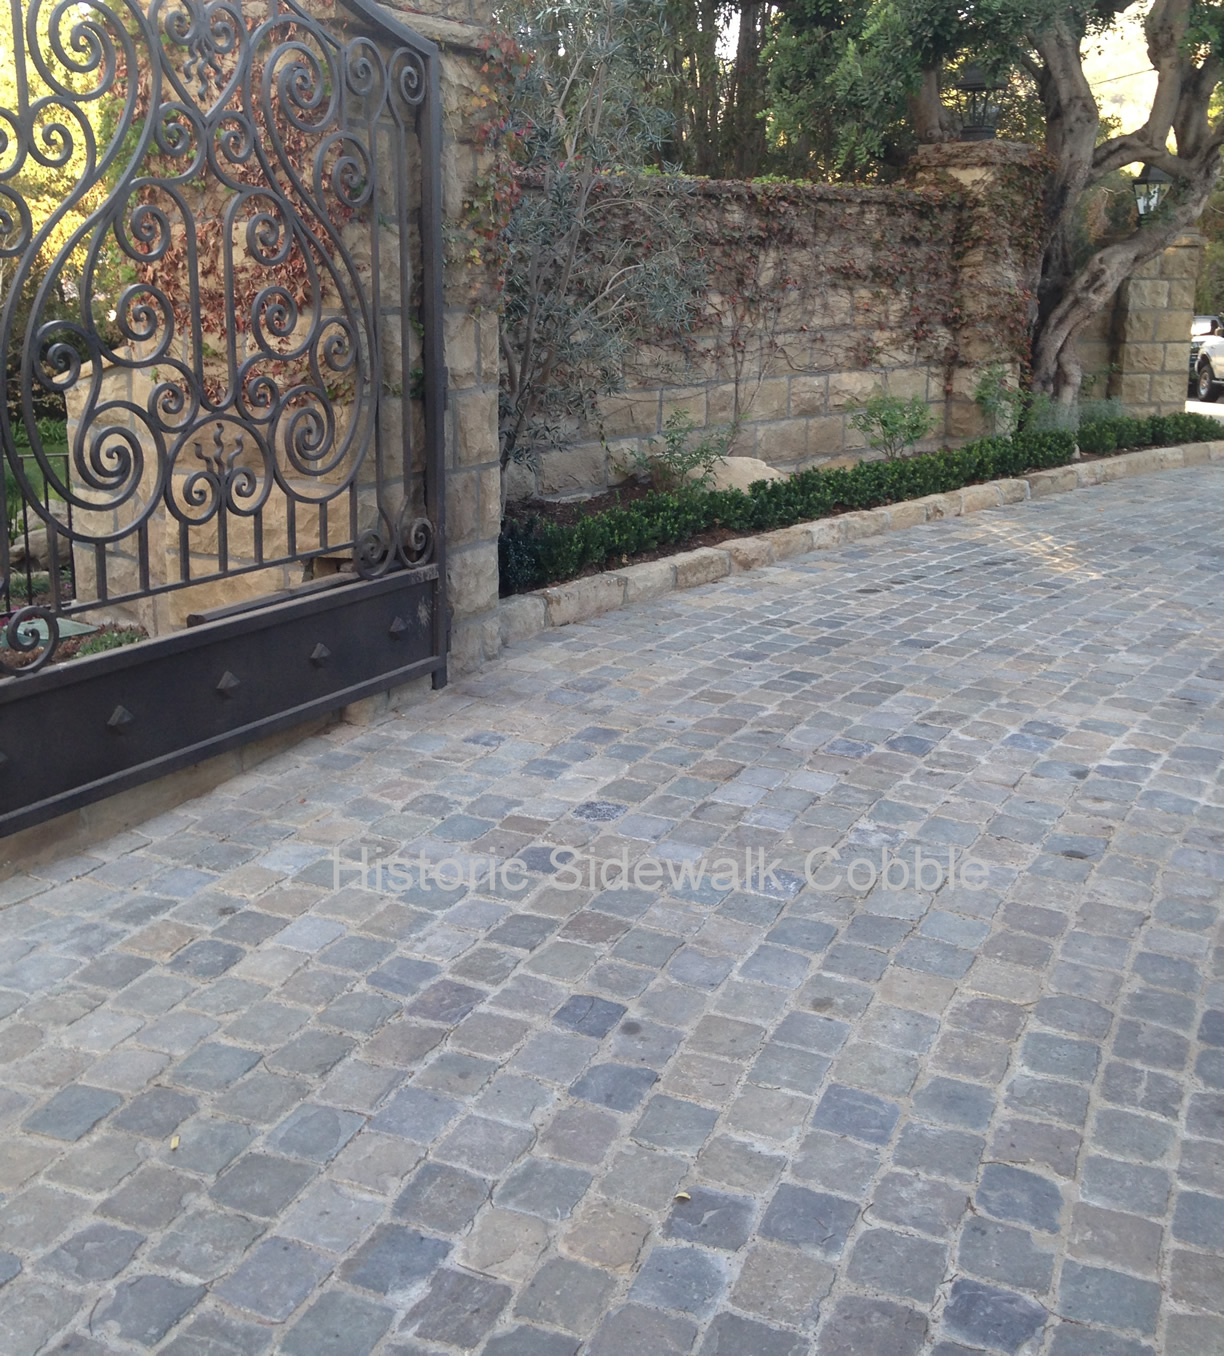 Antique Reclaimed Historic Sidewalk Cobble Antique